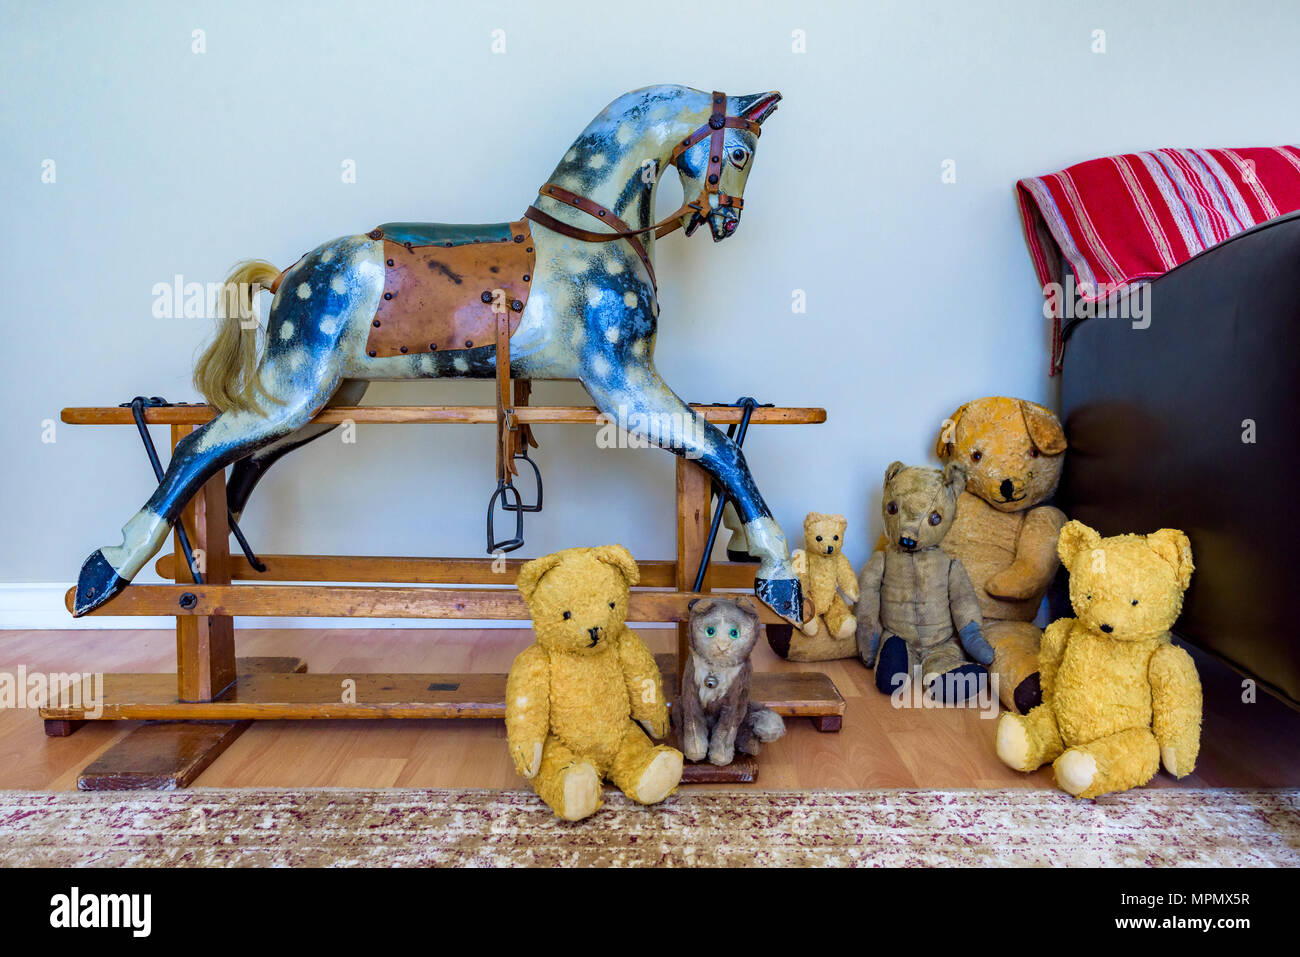 Vintage Antique Bcl Rambler Rocking Horse And Teddy Bears Stock Photo Alamy